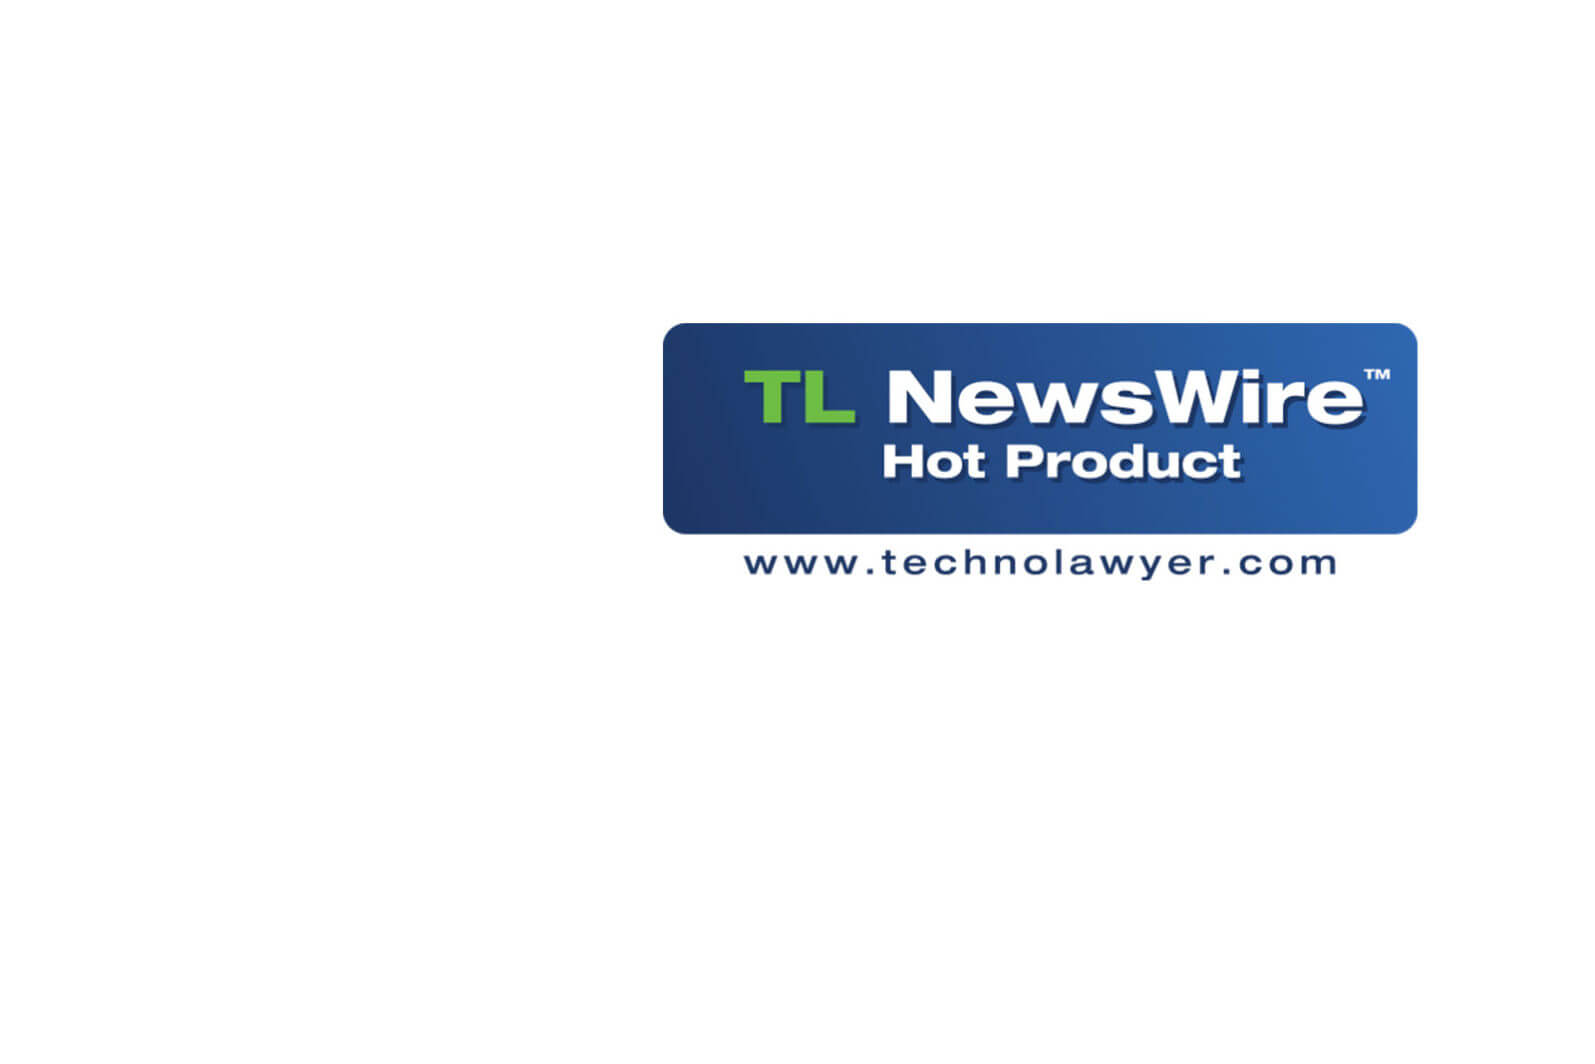 TimesManager is TL NewsWire's Hot Product